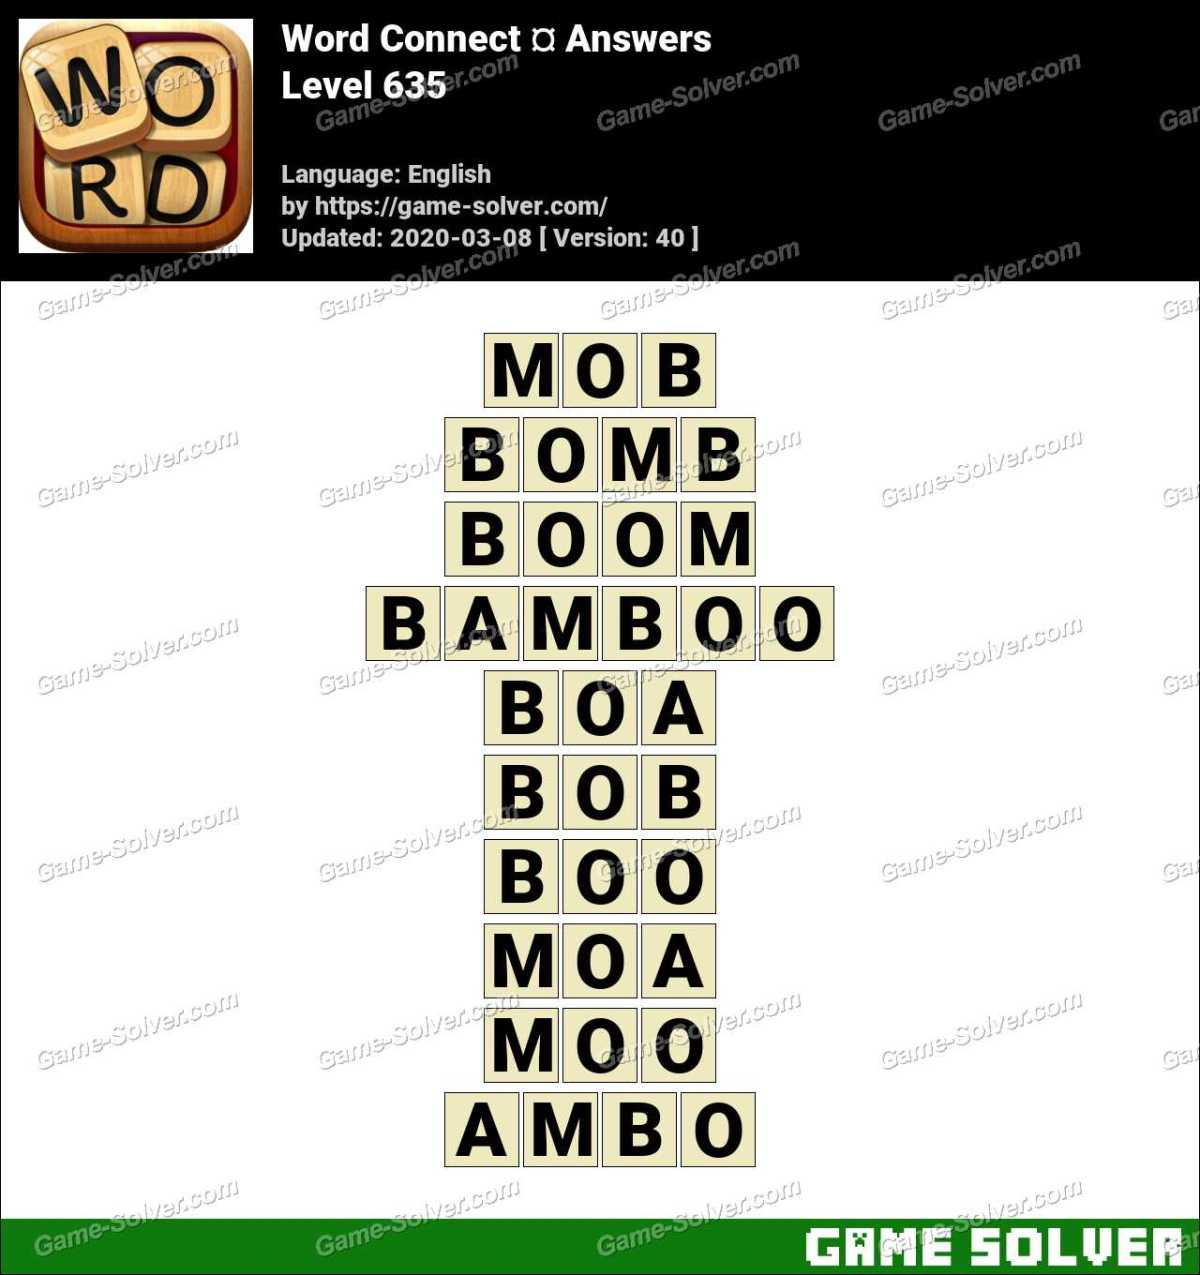 Word Connect Level 635 Answers